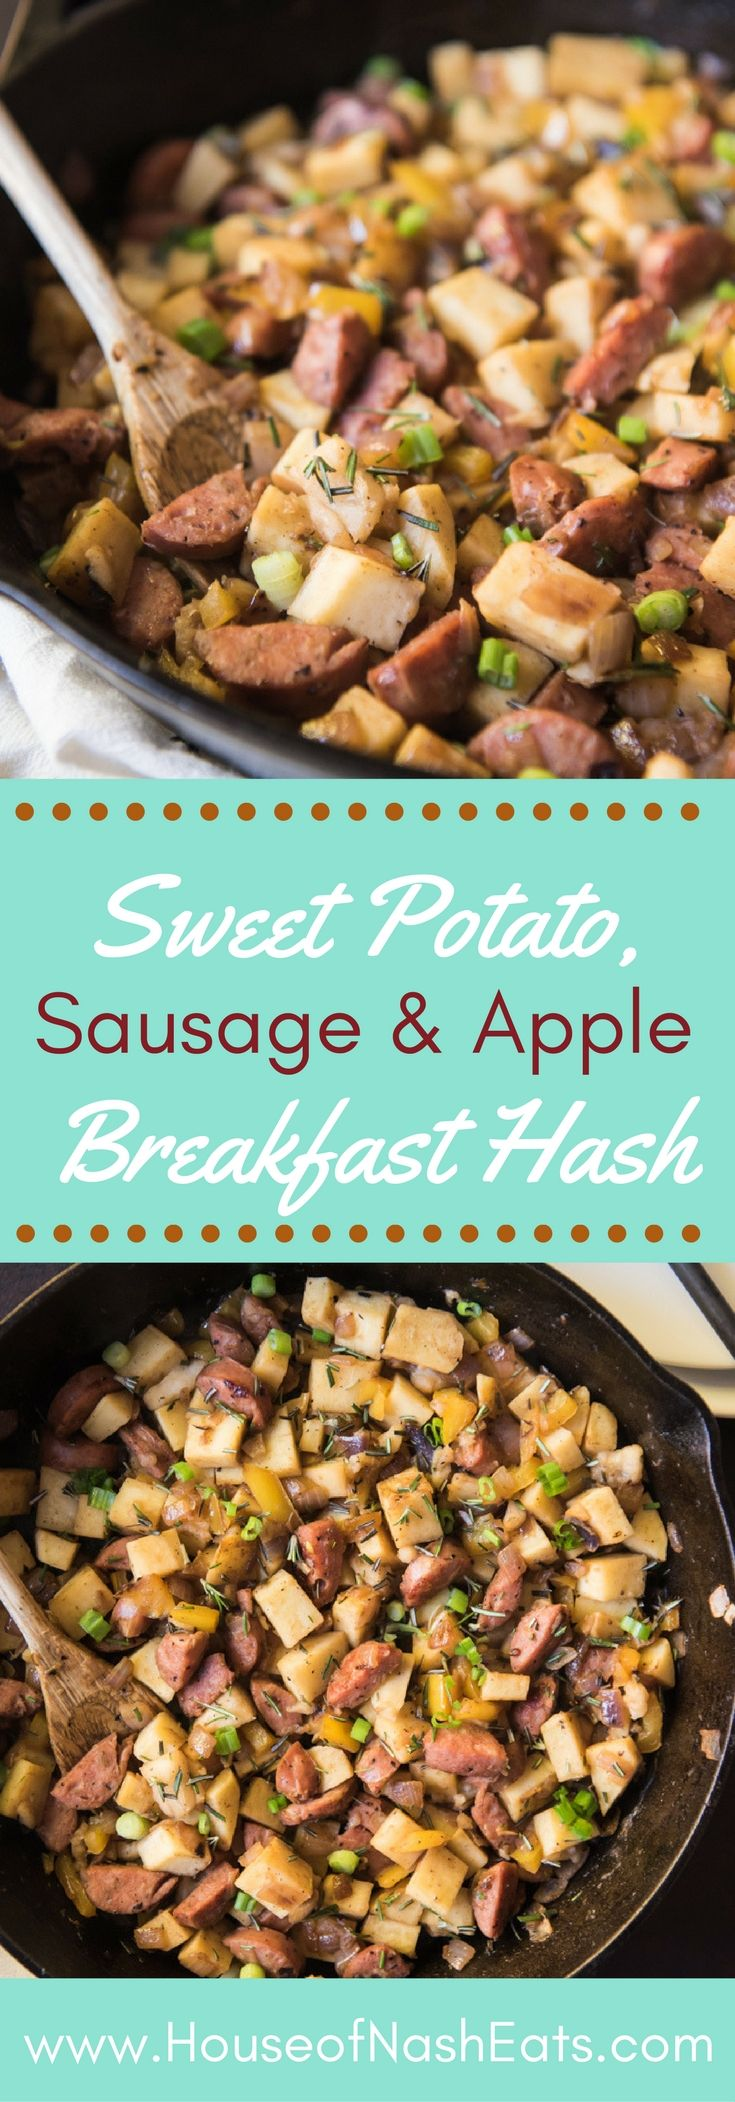 Sweet Potato Hash with Sausage & Apples is a good-for-you delicious, easy breakfast recipe to help you eat healthy in the new year!  I eat it because it's yummy, filling and a great start to my day, but it has the added benefit of being paleo, gluten-free, and Whole30 compliant! #whole30 #sweetpotatoes #breakfast #hash #paleo #glutenfree